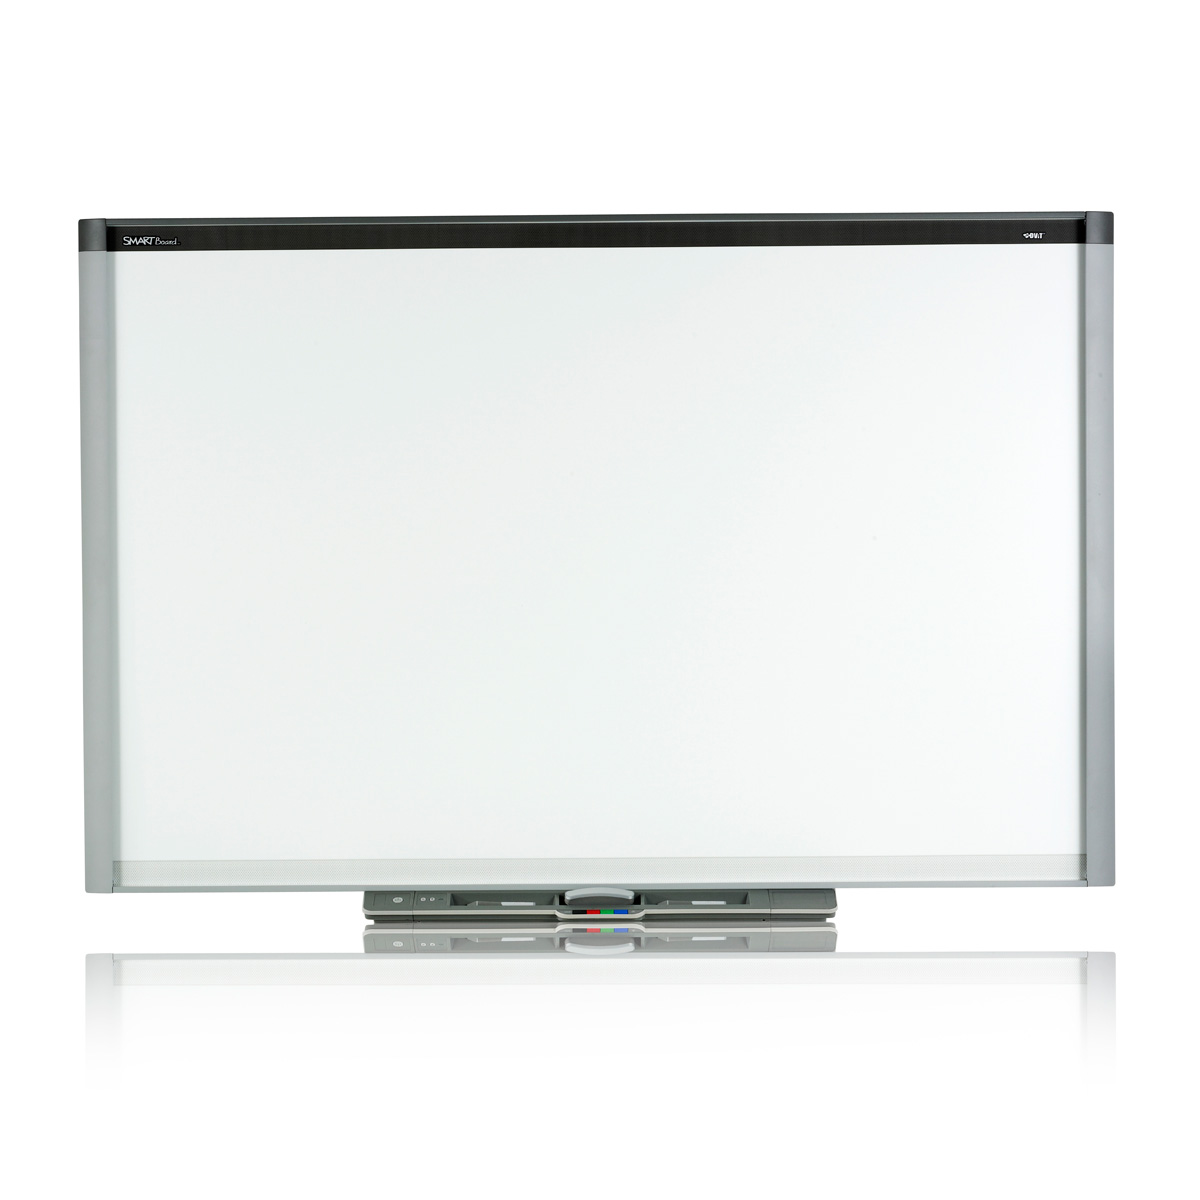 Interaktivní tabule SMART Board 880